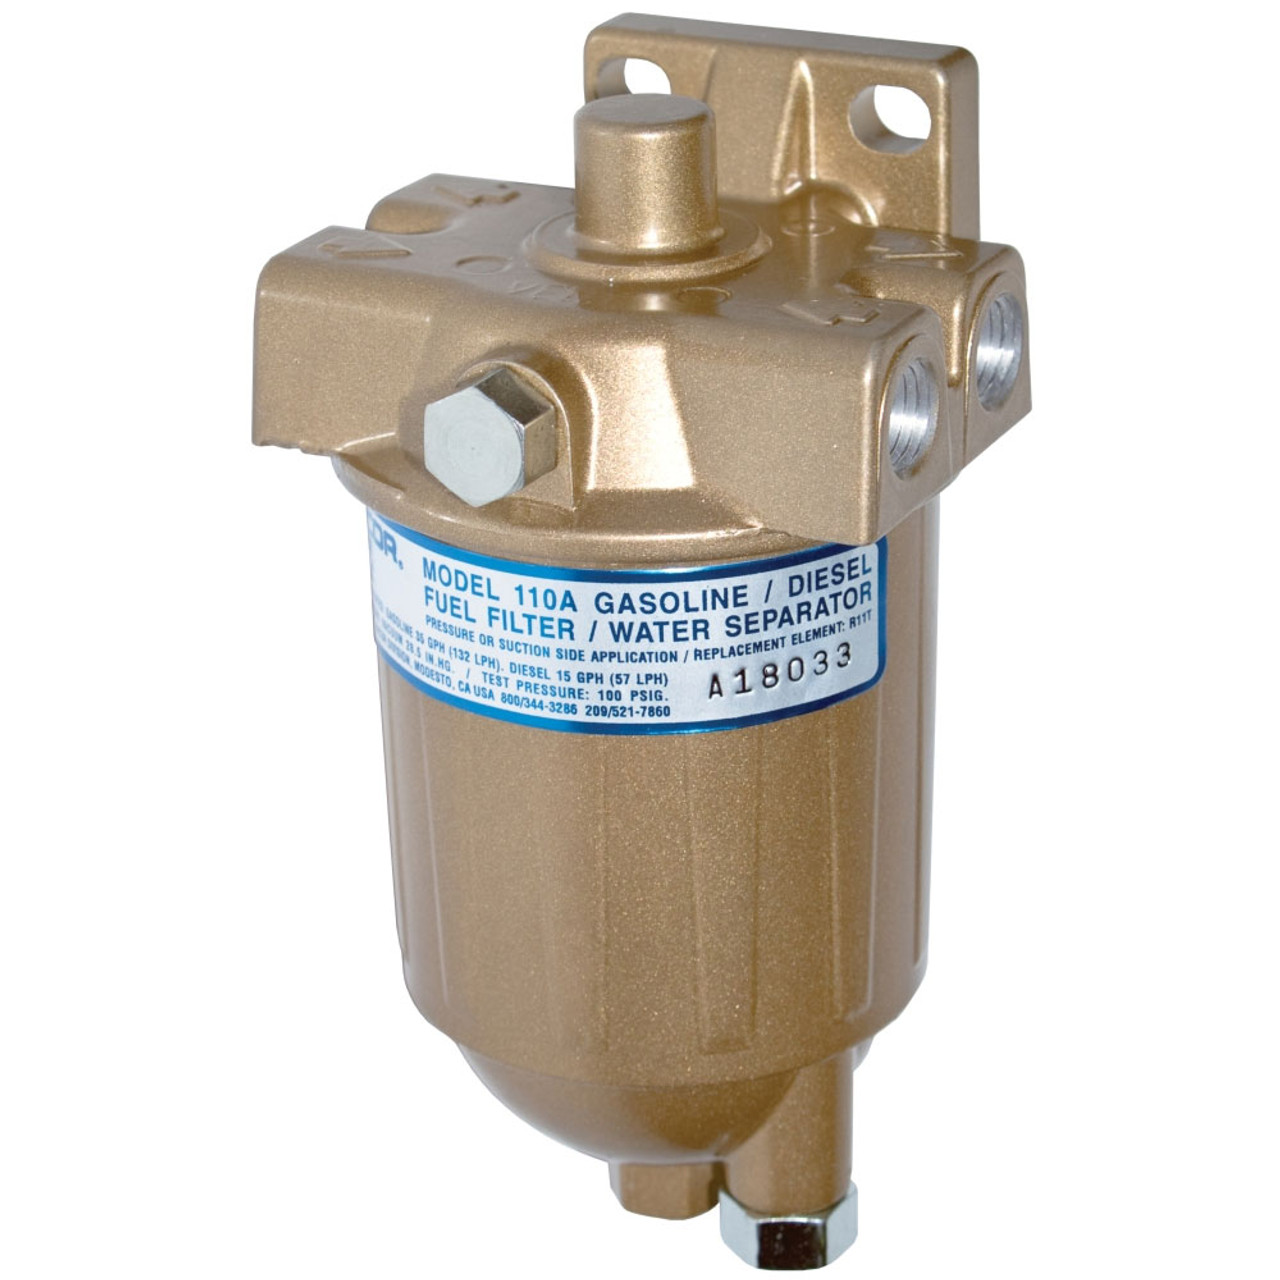 In Line Fuel Filter Water Separator Wire Data Schema Yamaha Outboard Images Gallery